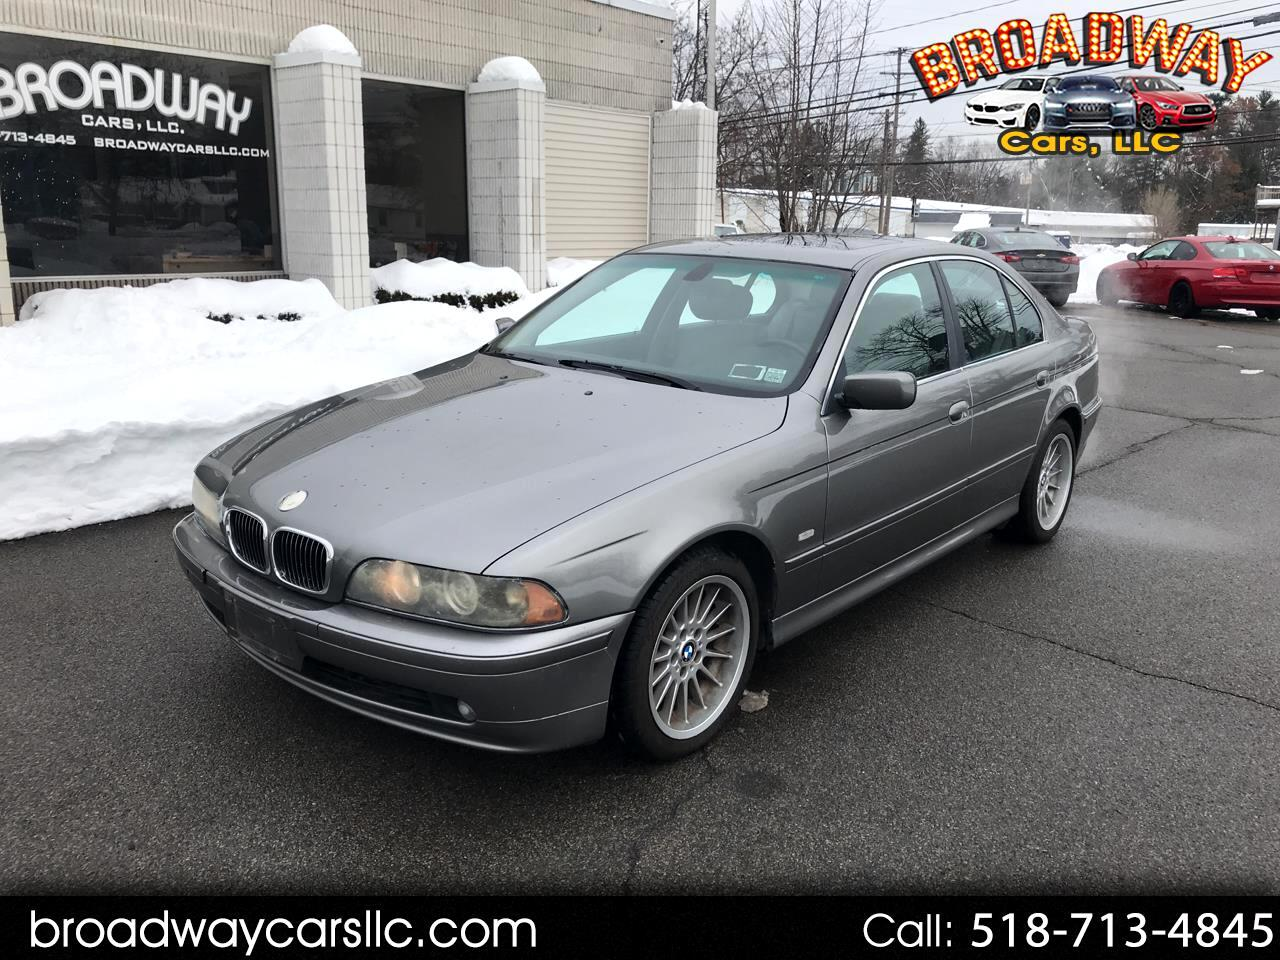 BMW 5 Series 530iA 4dr Sdn 5-Spd Auto 2002